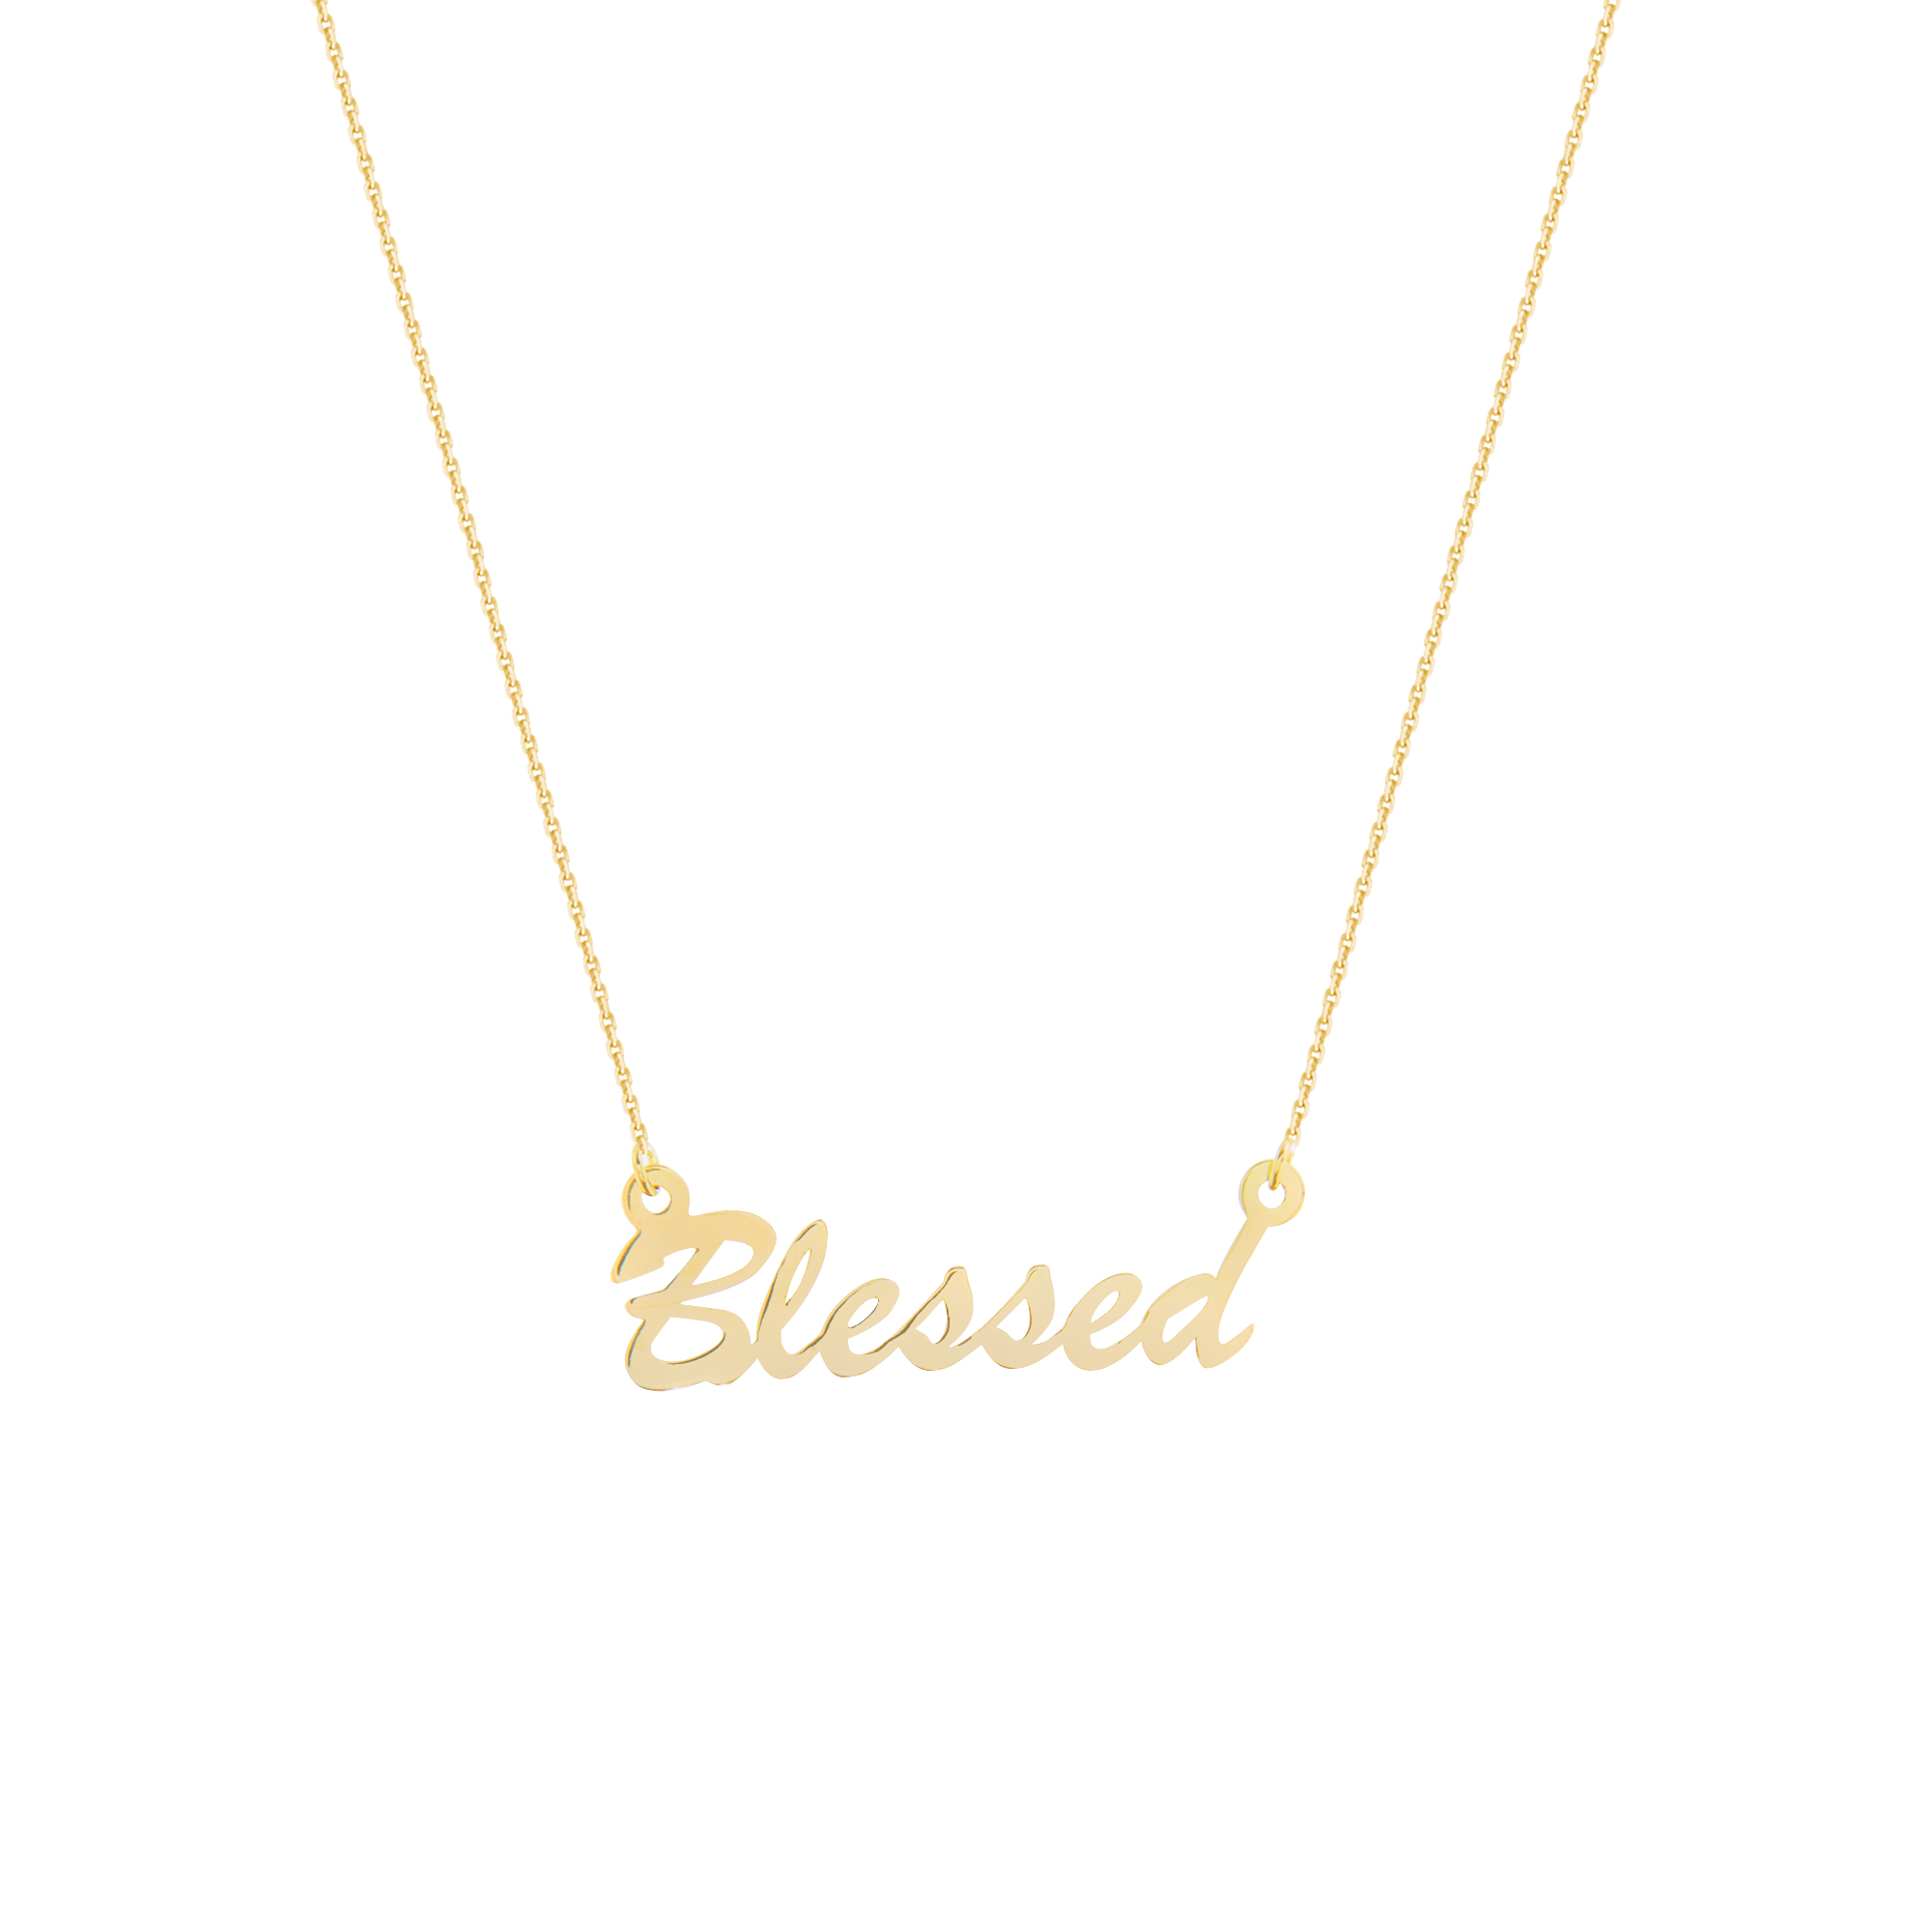 Blessed Necklace, 14Kt Gold Blessed Necklace 18